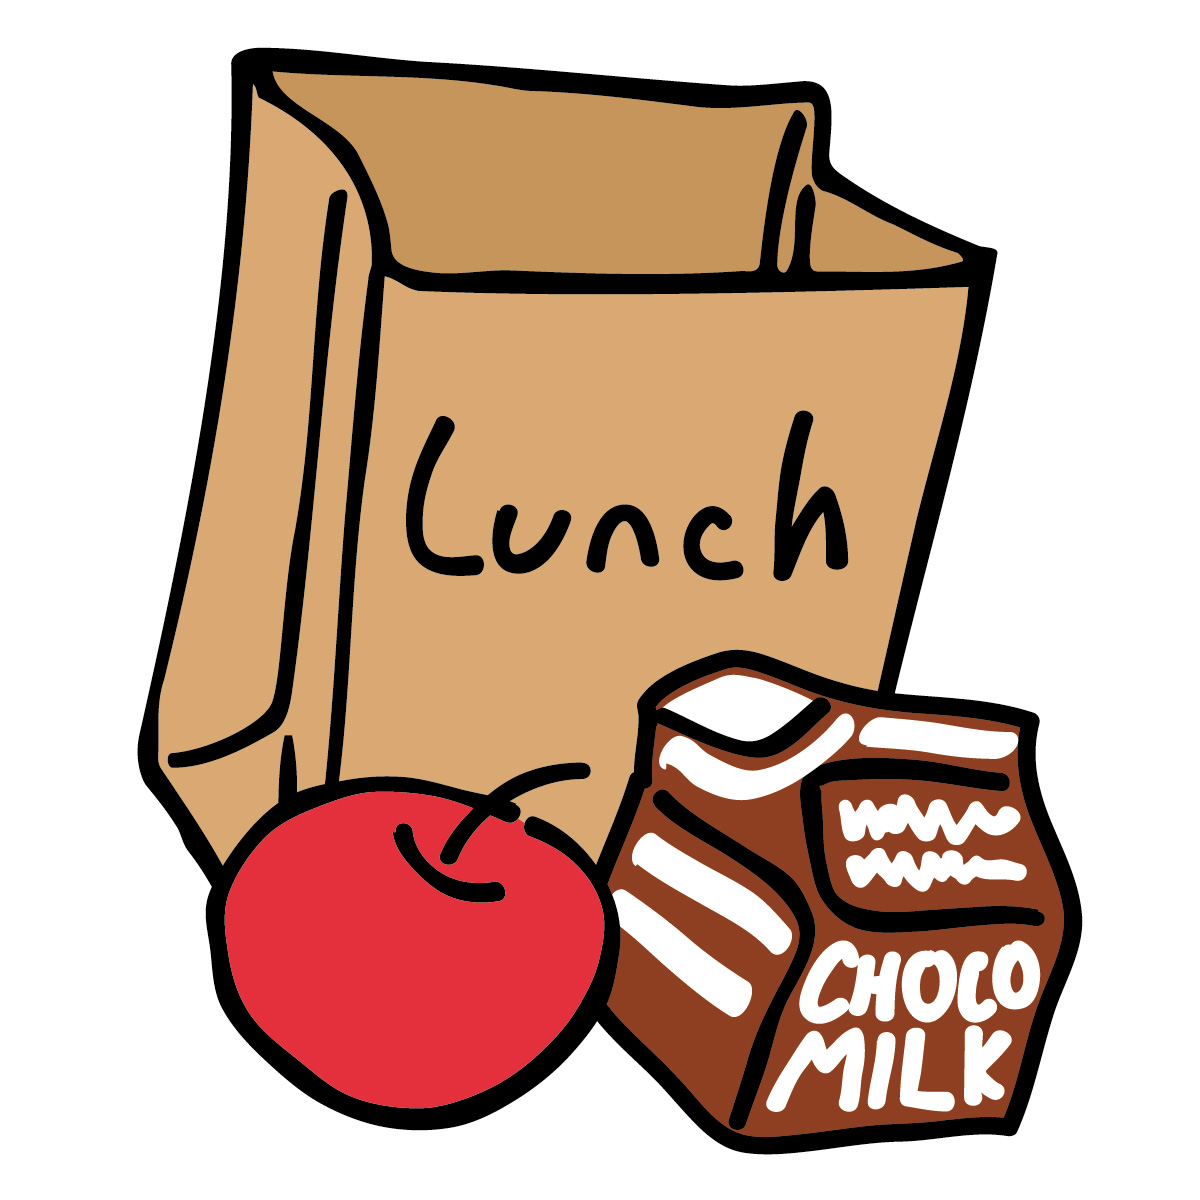 image free stock Lunch clipart. Time clip art panda.